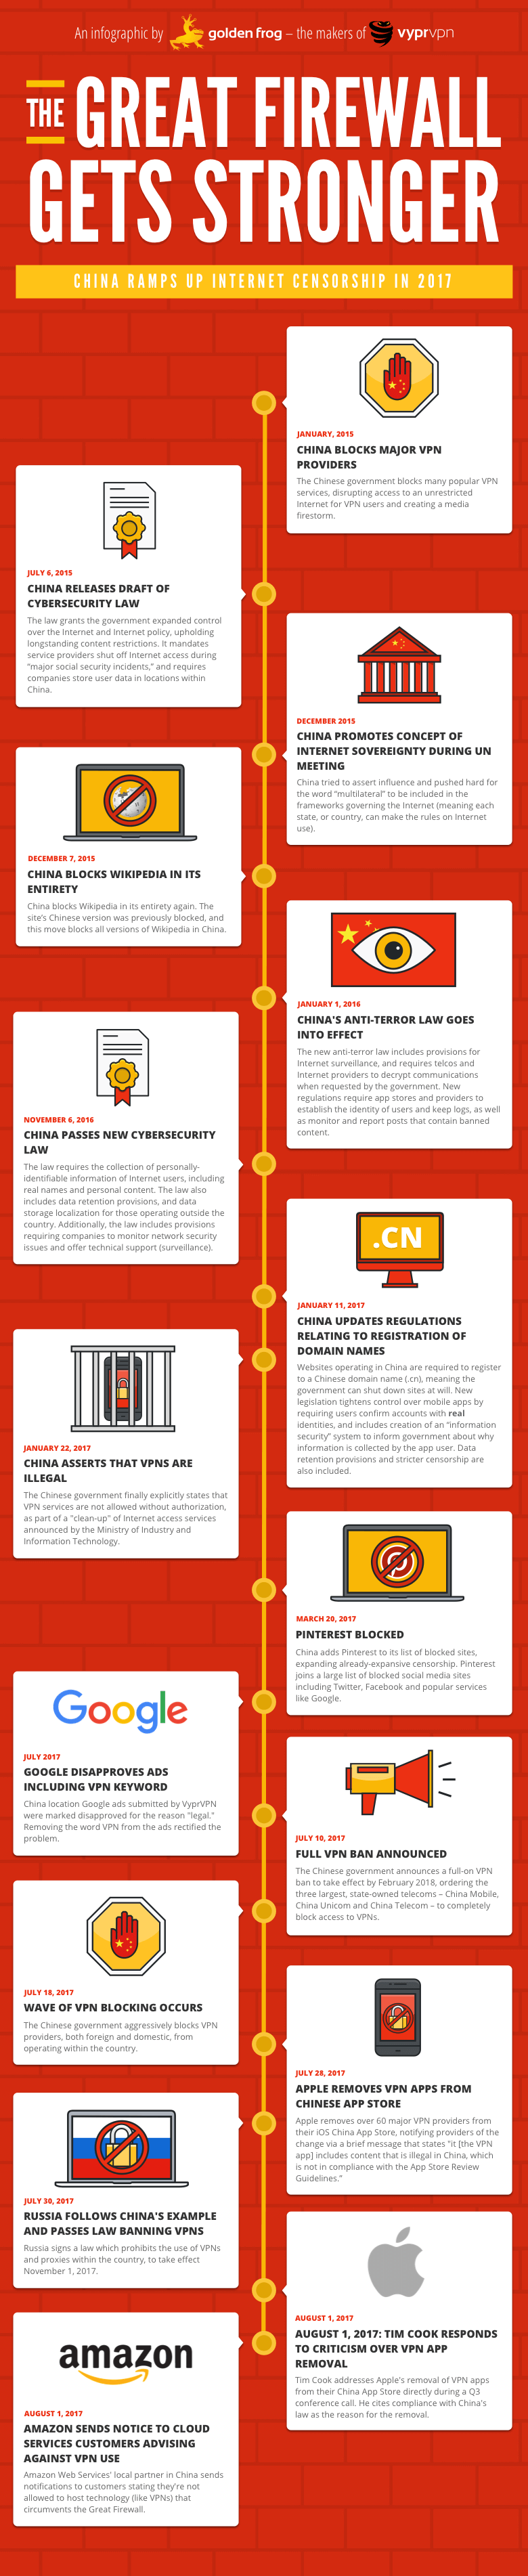 China has ramped up its Internet censorship, and we're taking a look at recent events leading up to the latest App Store VPN ban.